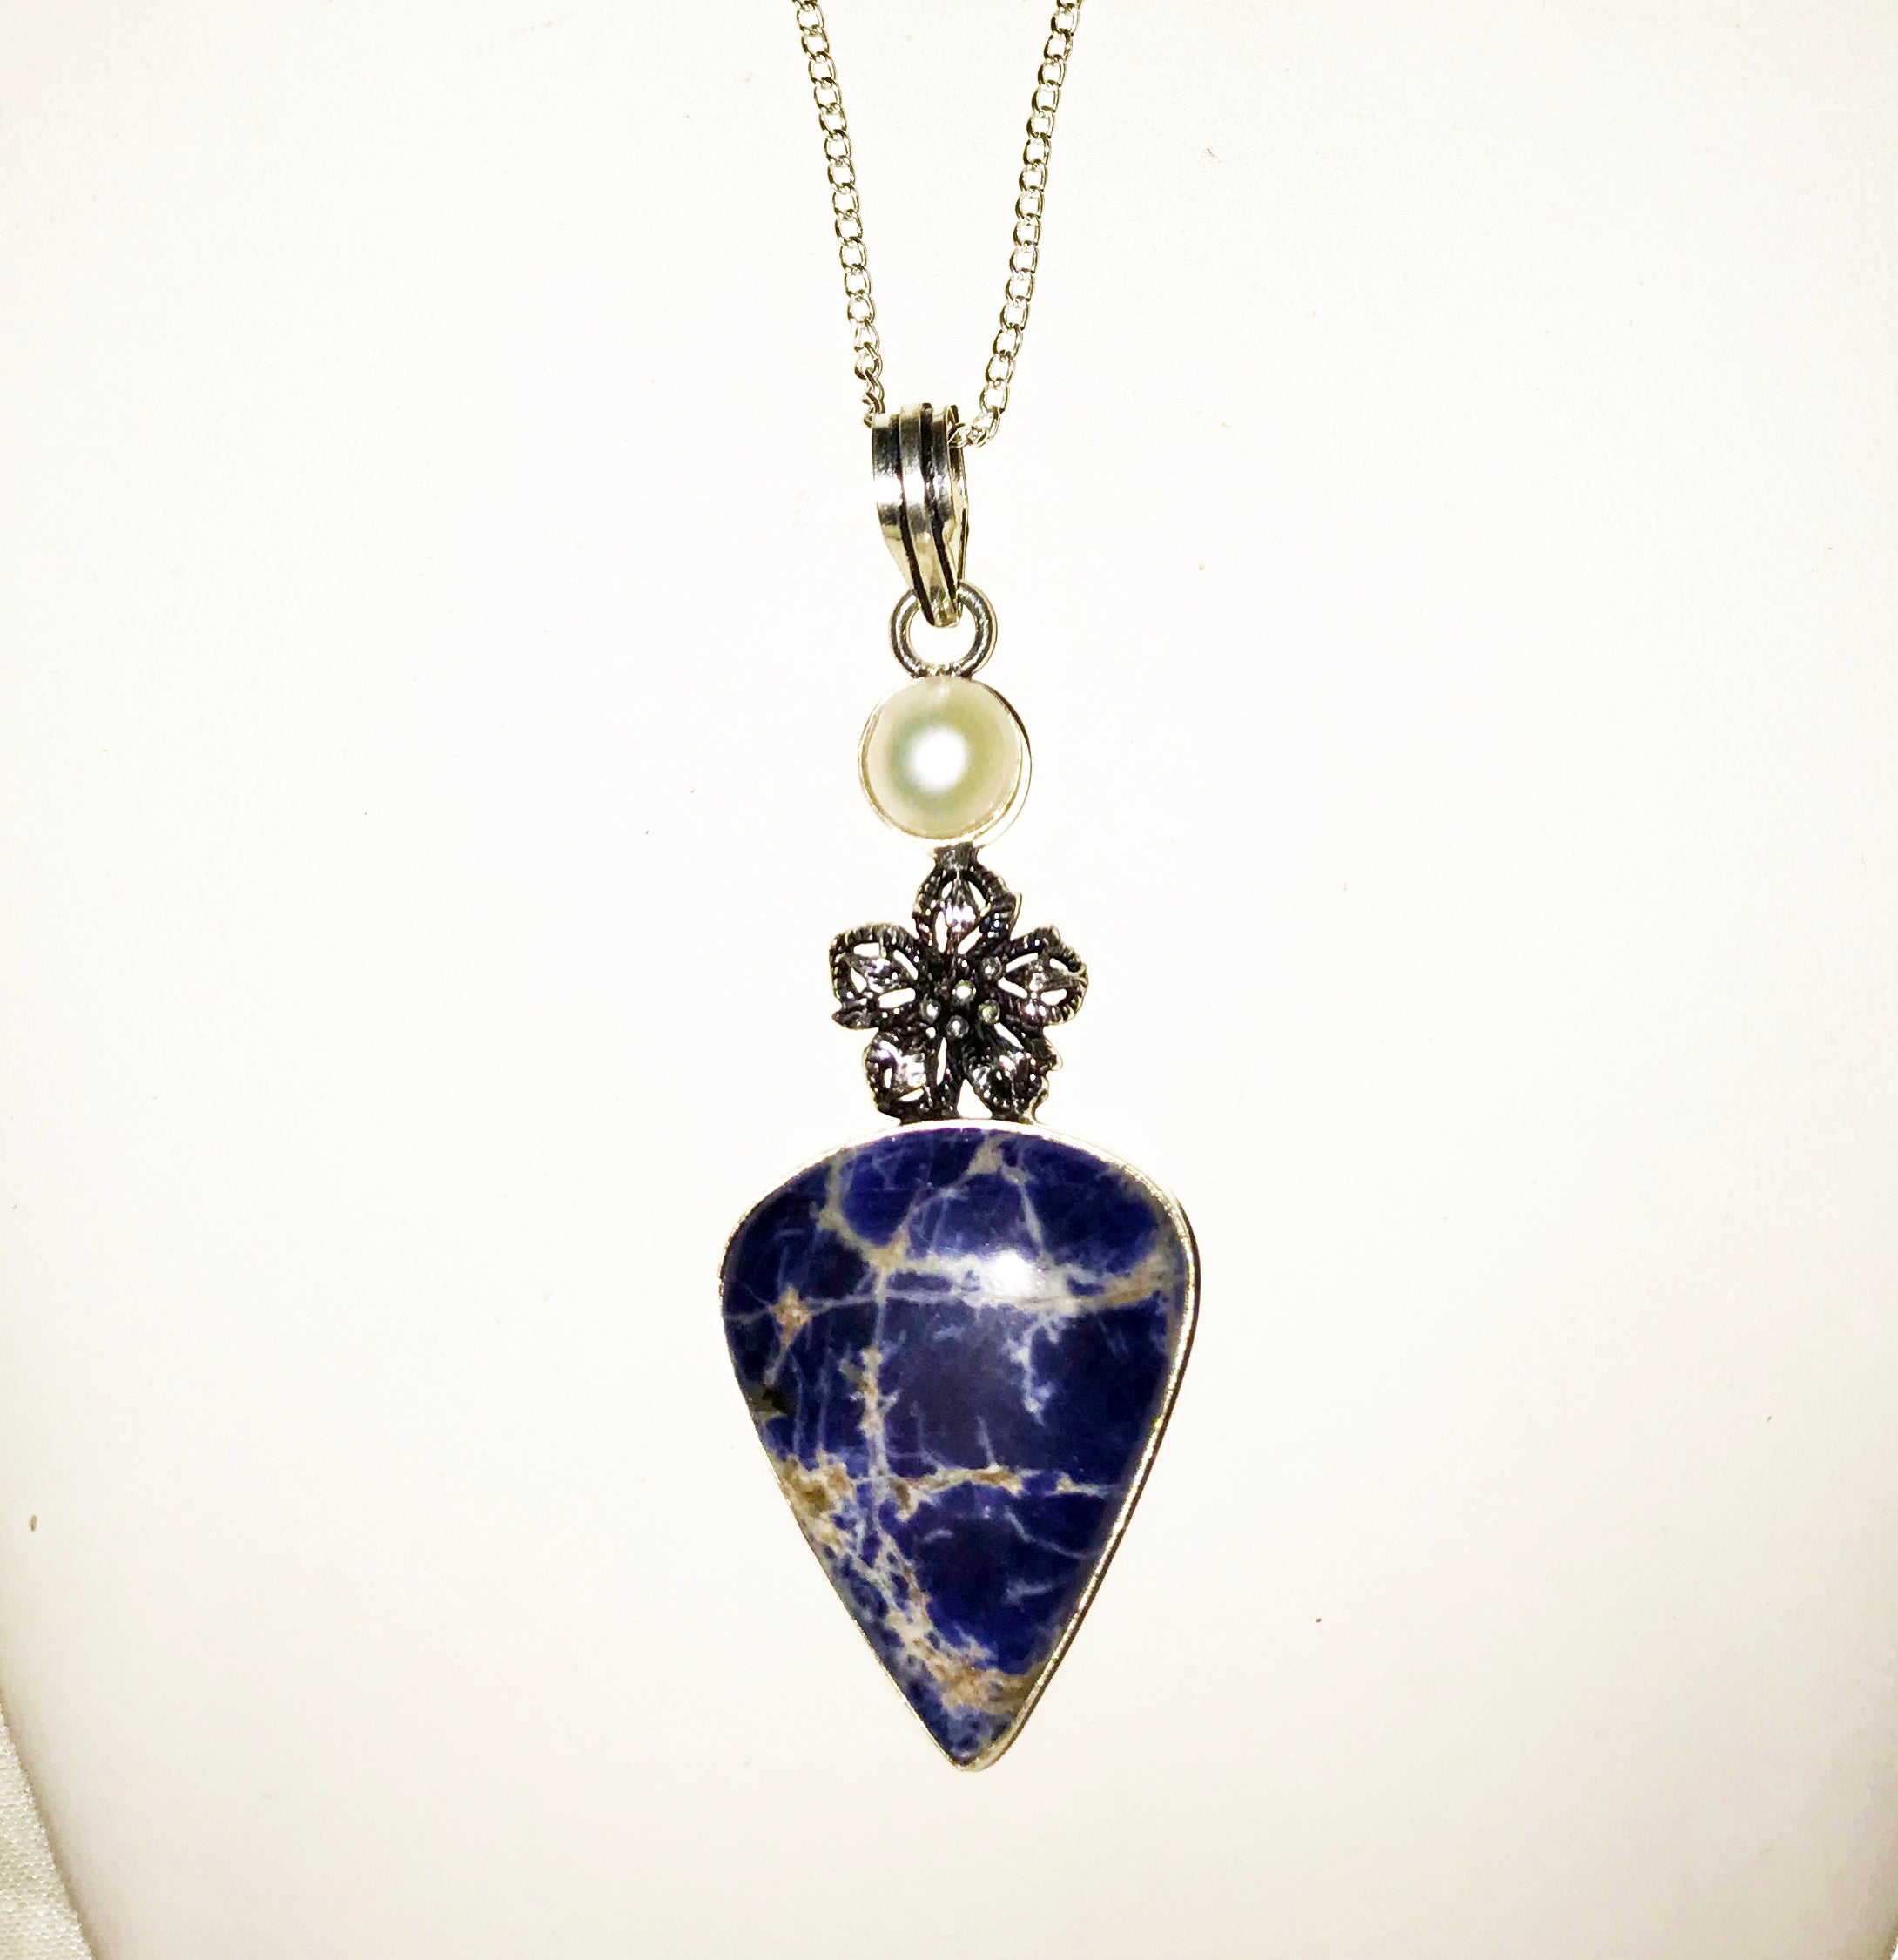 Wonderful Protective Bean Tighe (Banshee) – Sodalite Pendant - Autumn Dusk Spirits